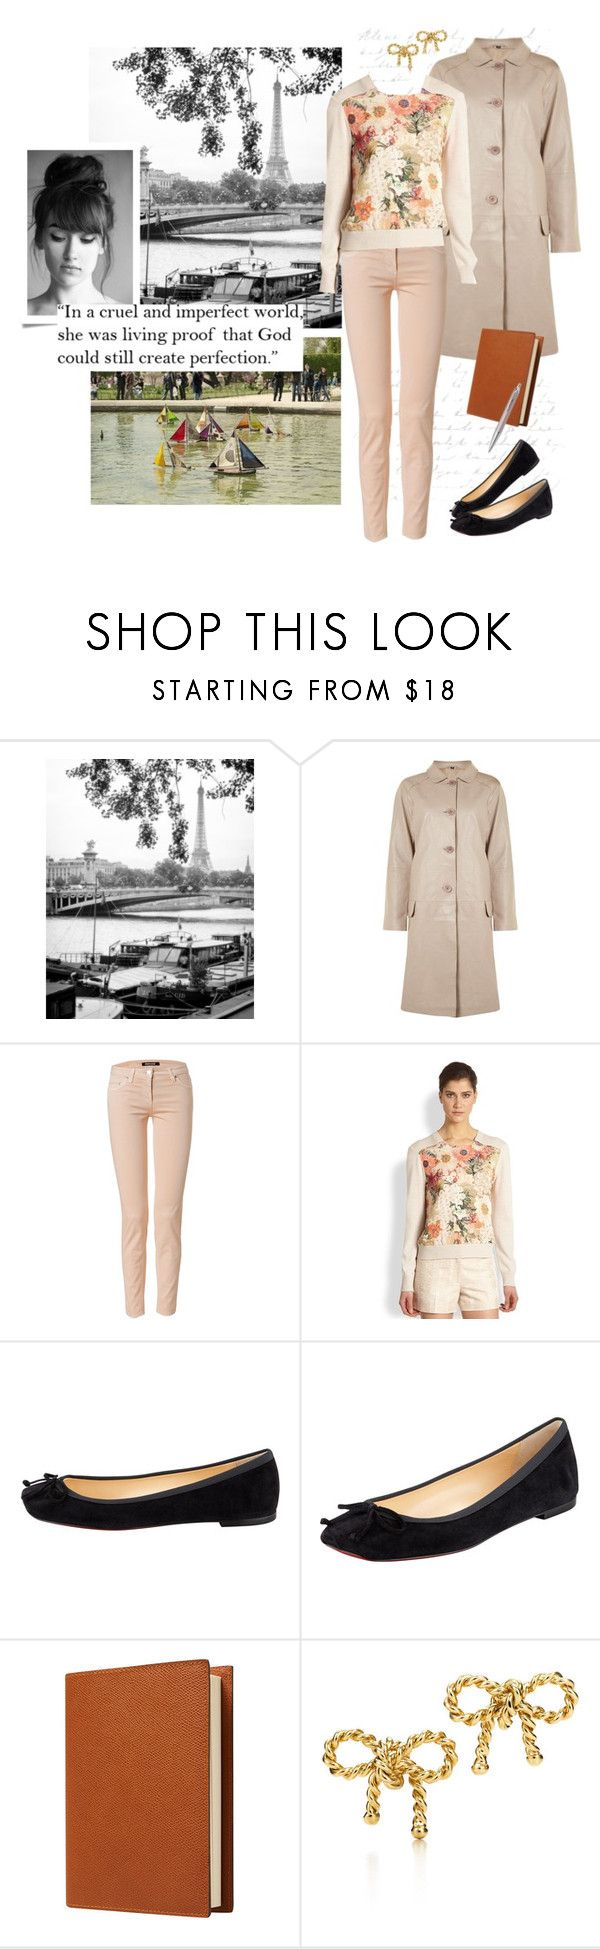 """Paris Floral Jumper #1"" by prettyannamoon ❤ liked on Polyvore featuring WALL, Betty Jackson, Roberto Cavalli, Tory Burch, Christian Louboutin, Pinetti and Tiffany & Co."